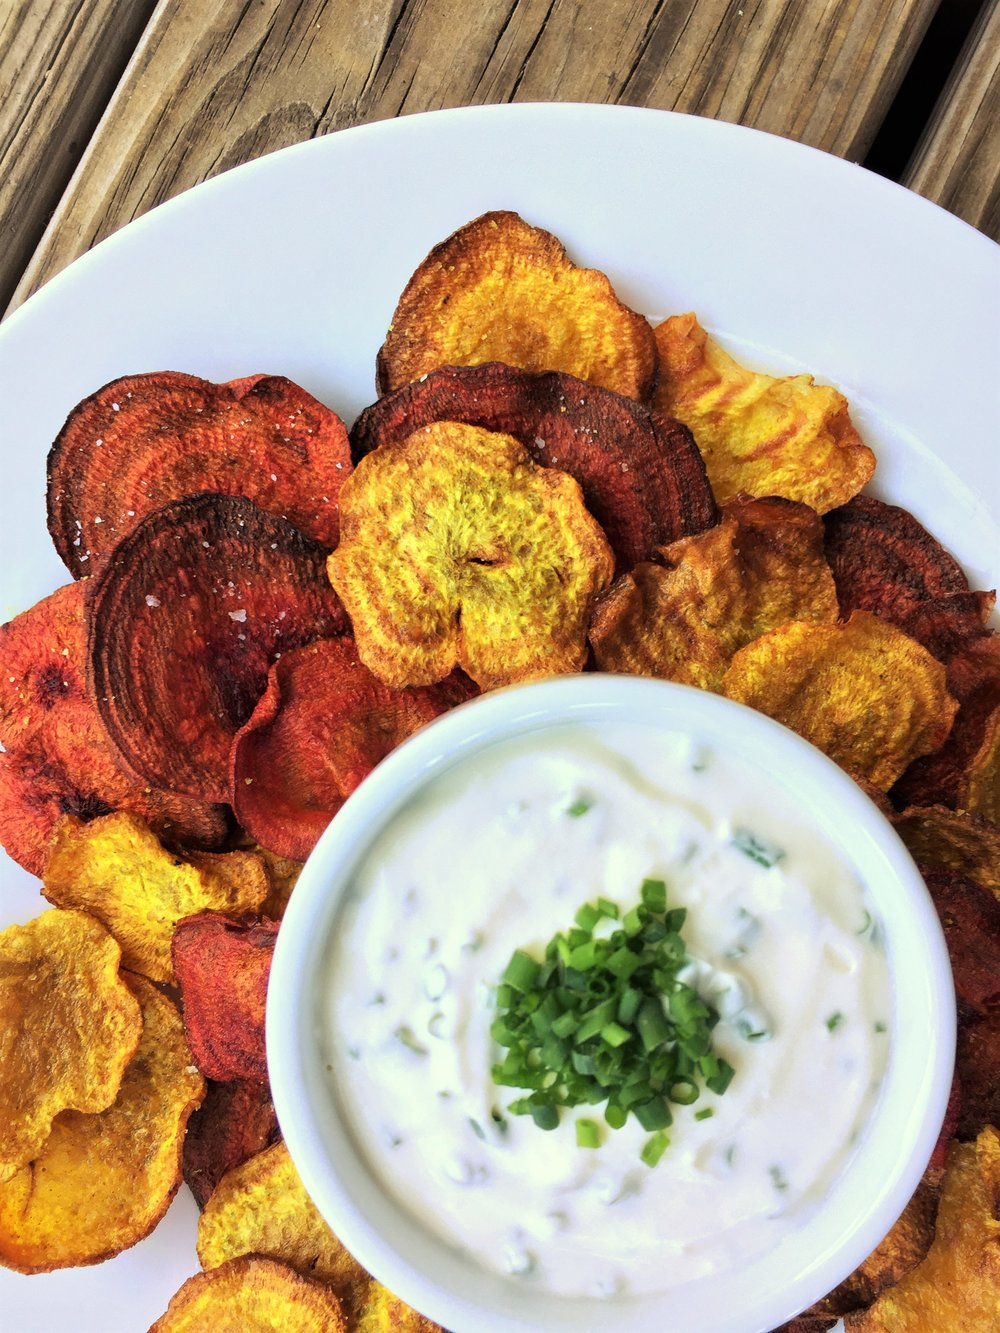 Curried Beet Chips made in the Adventure Kitchen, served with  Creamy Goat Cheese Dip .